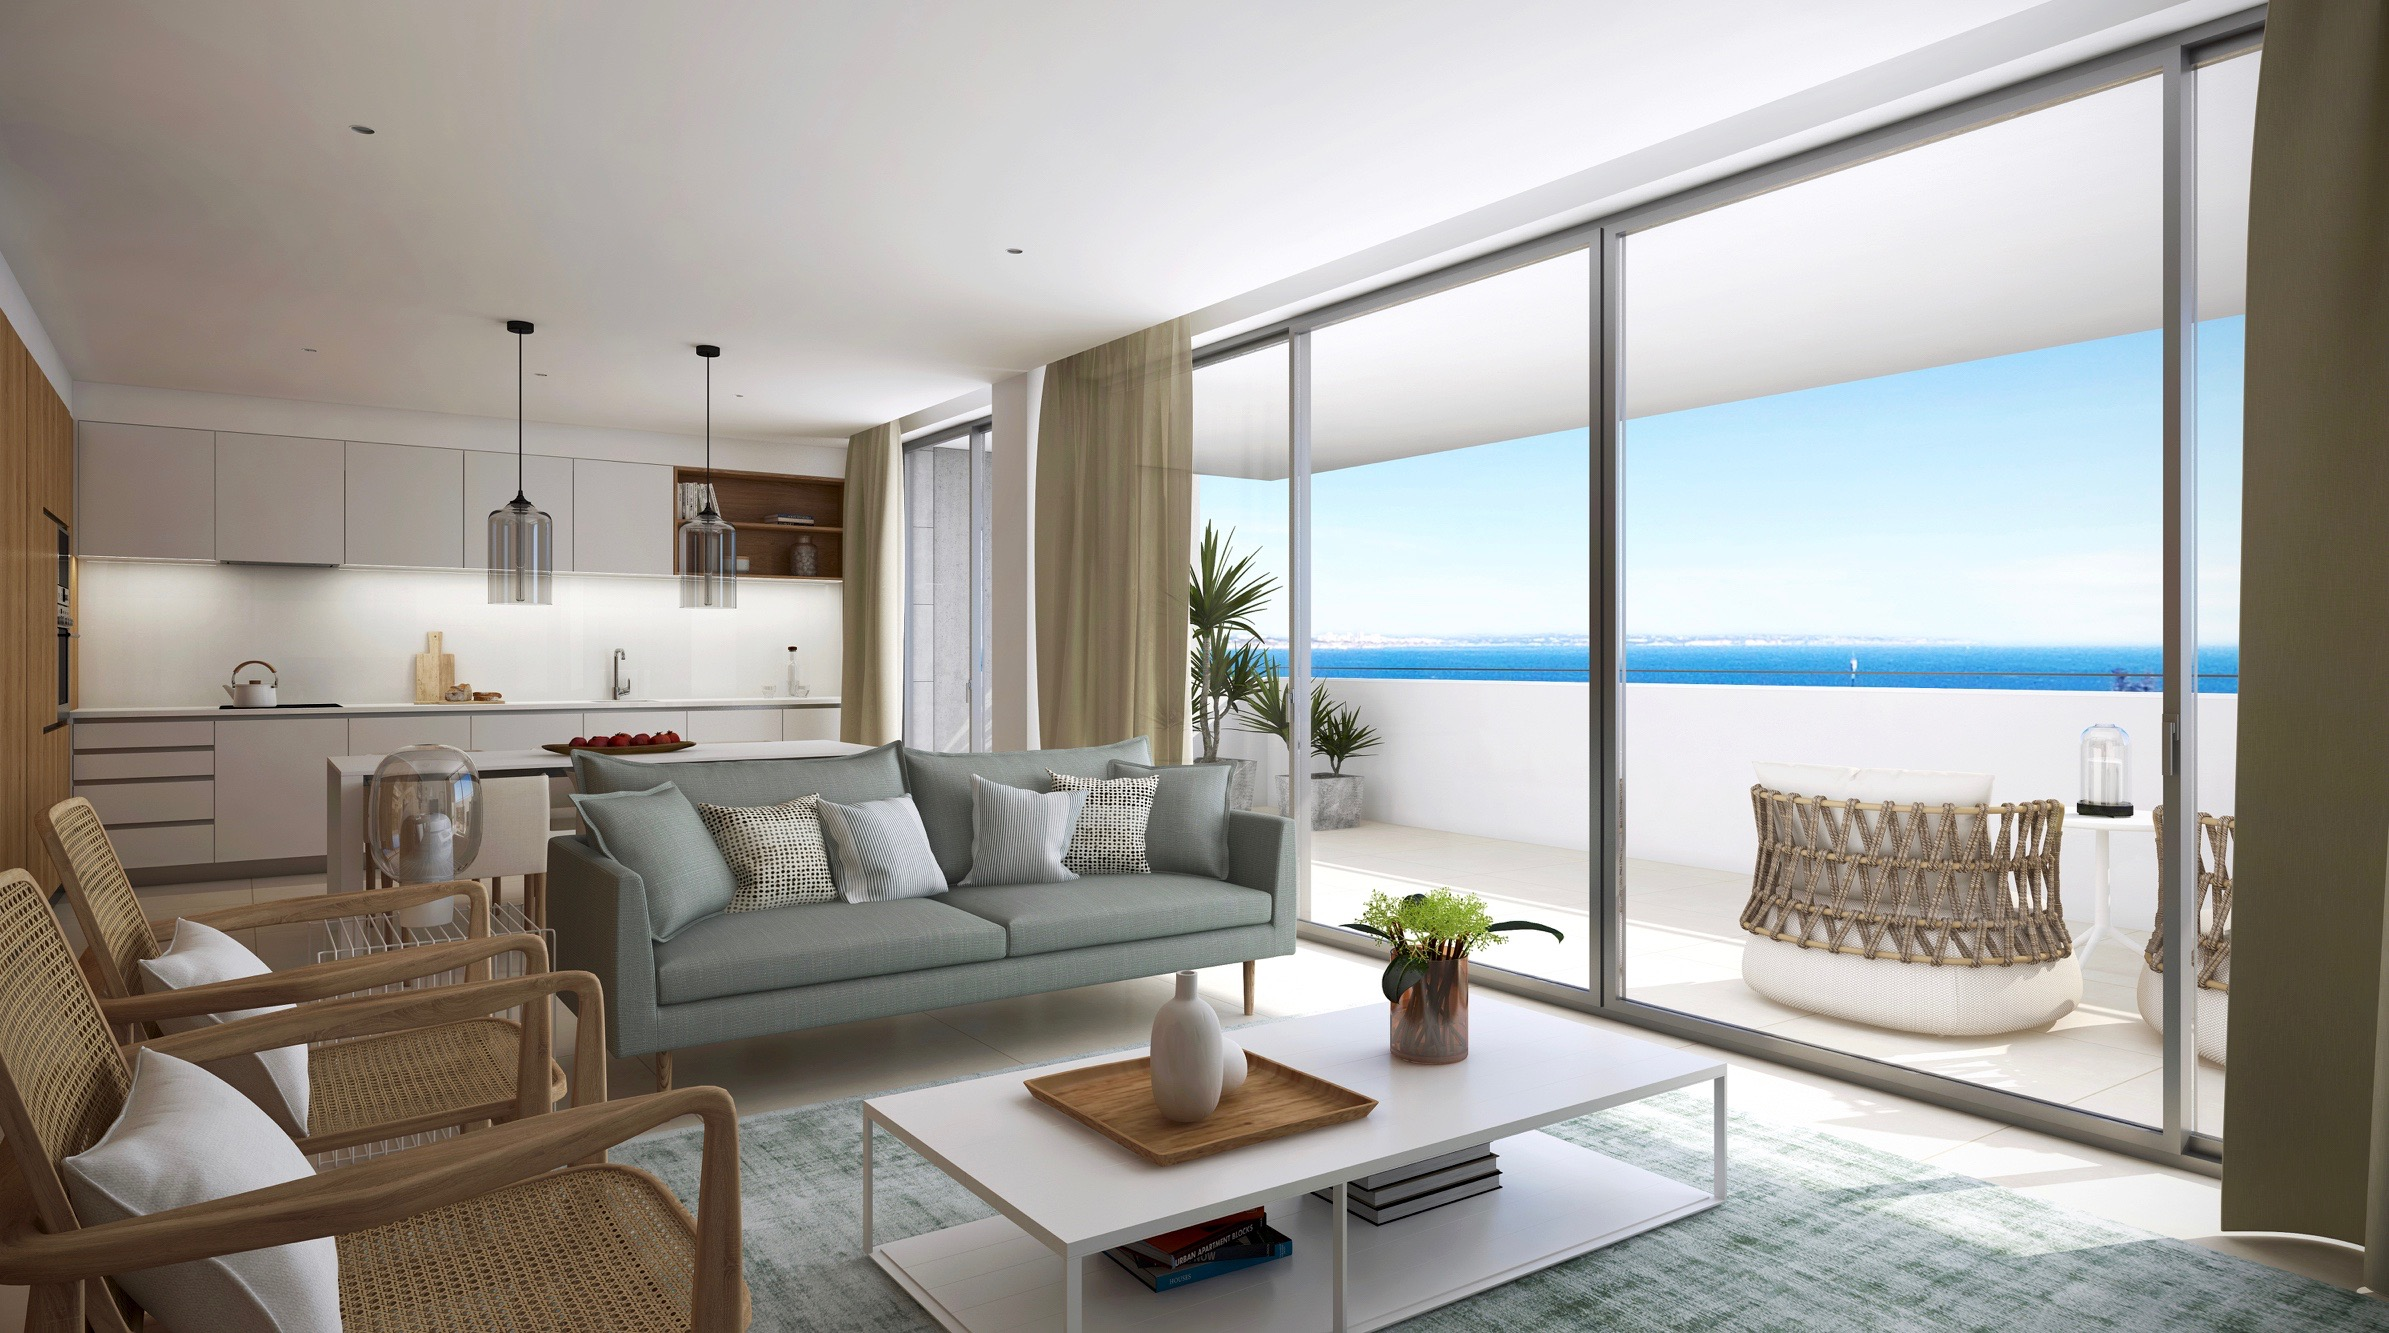 Luxury 3 bedroom apartment with sea views in Lagos  - 3 Bedrooms